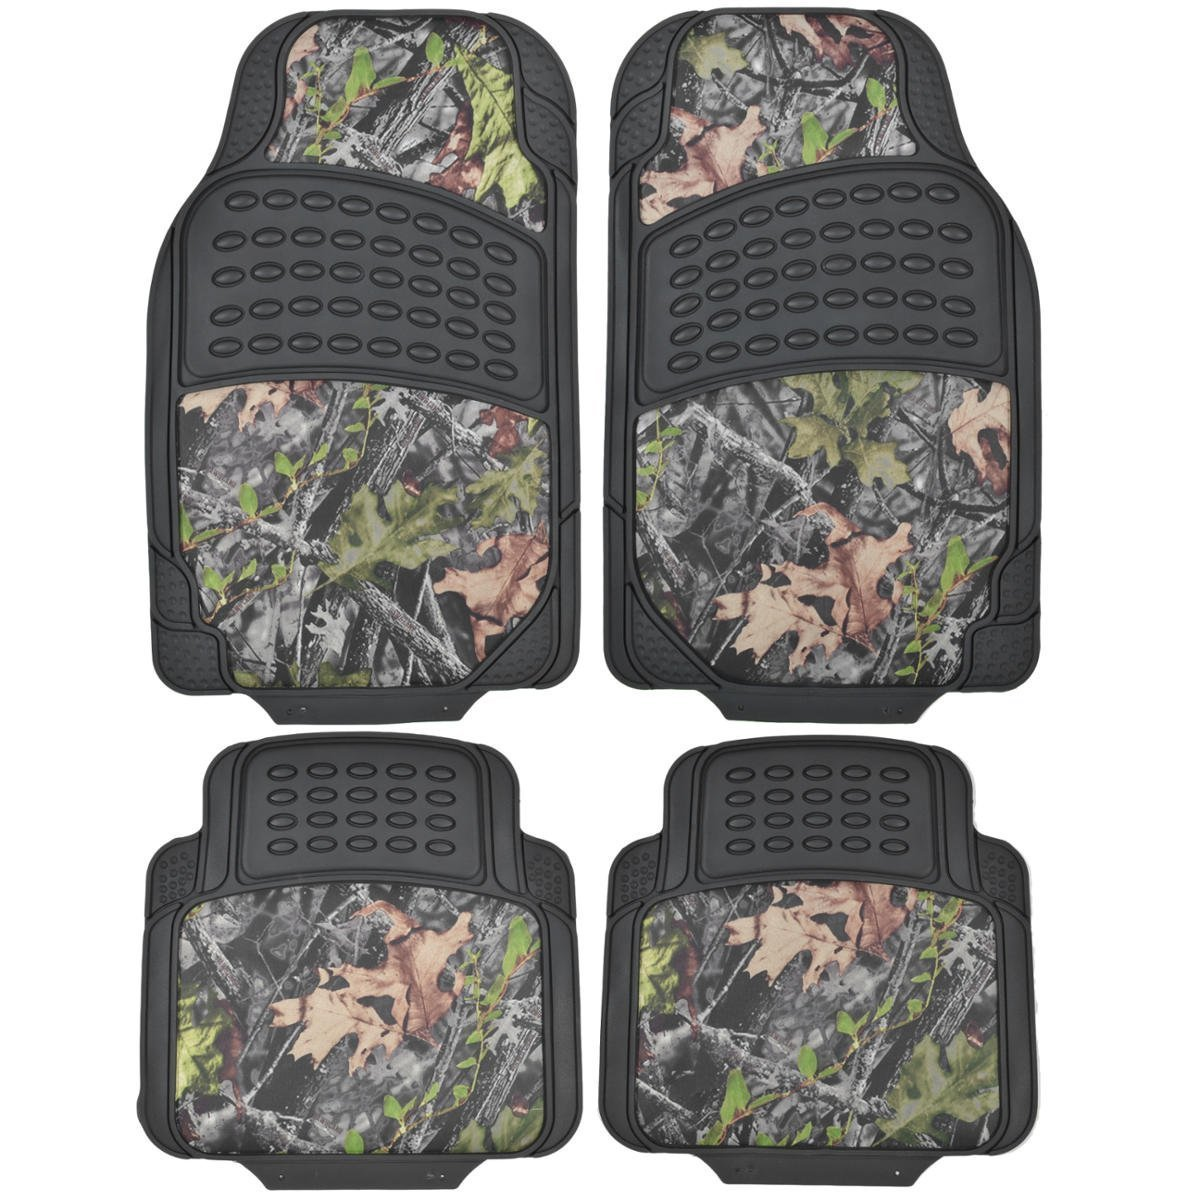 Heavy Duty Fit Most Car Truck SUV MT-684-CM Trimmable BDK Camouflage 4 Piece All Weather Waterproof Rubber Car Floor Mats